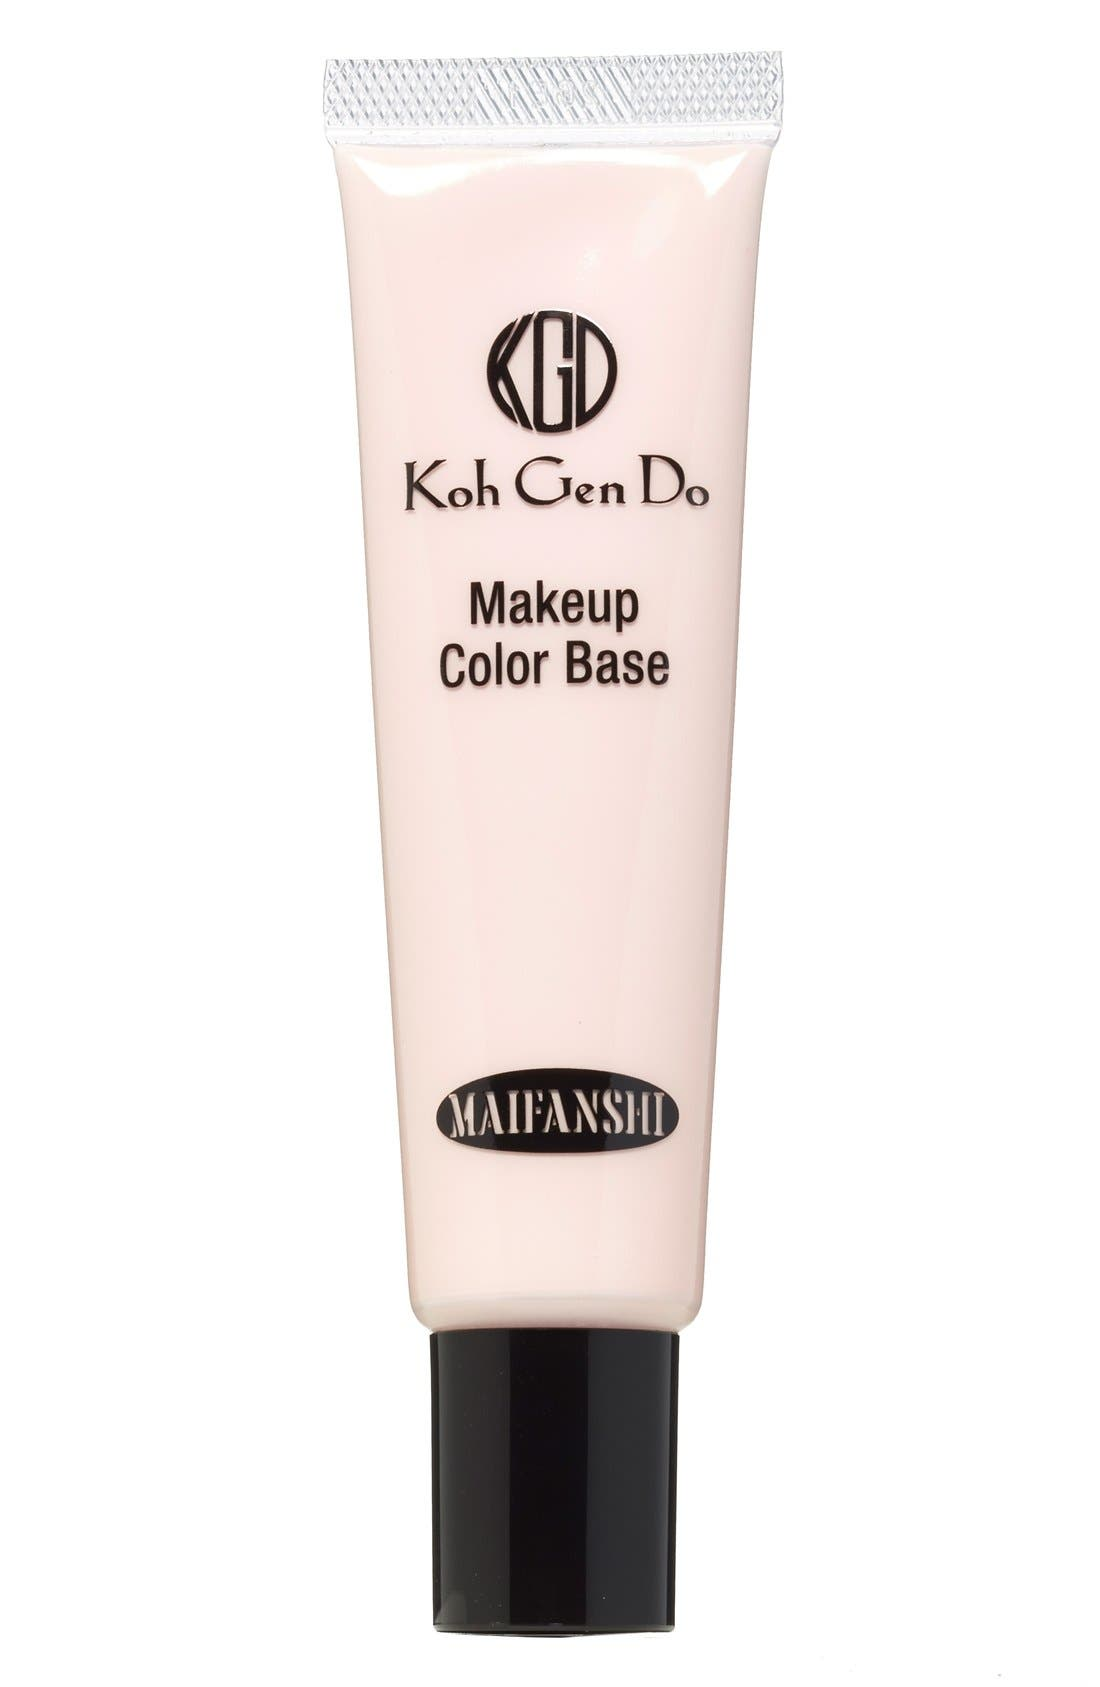 'Maifanshi - Pearl White' Makeup Color Base,                             Main thumbnail 3, color,